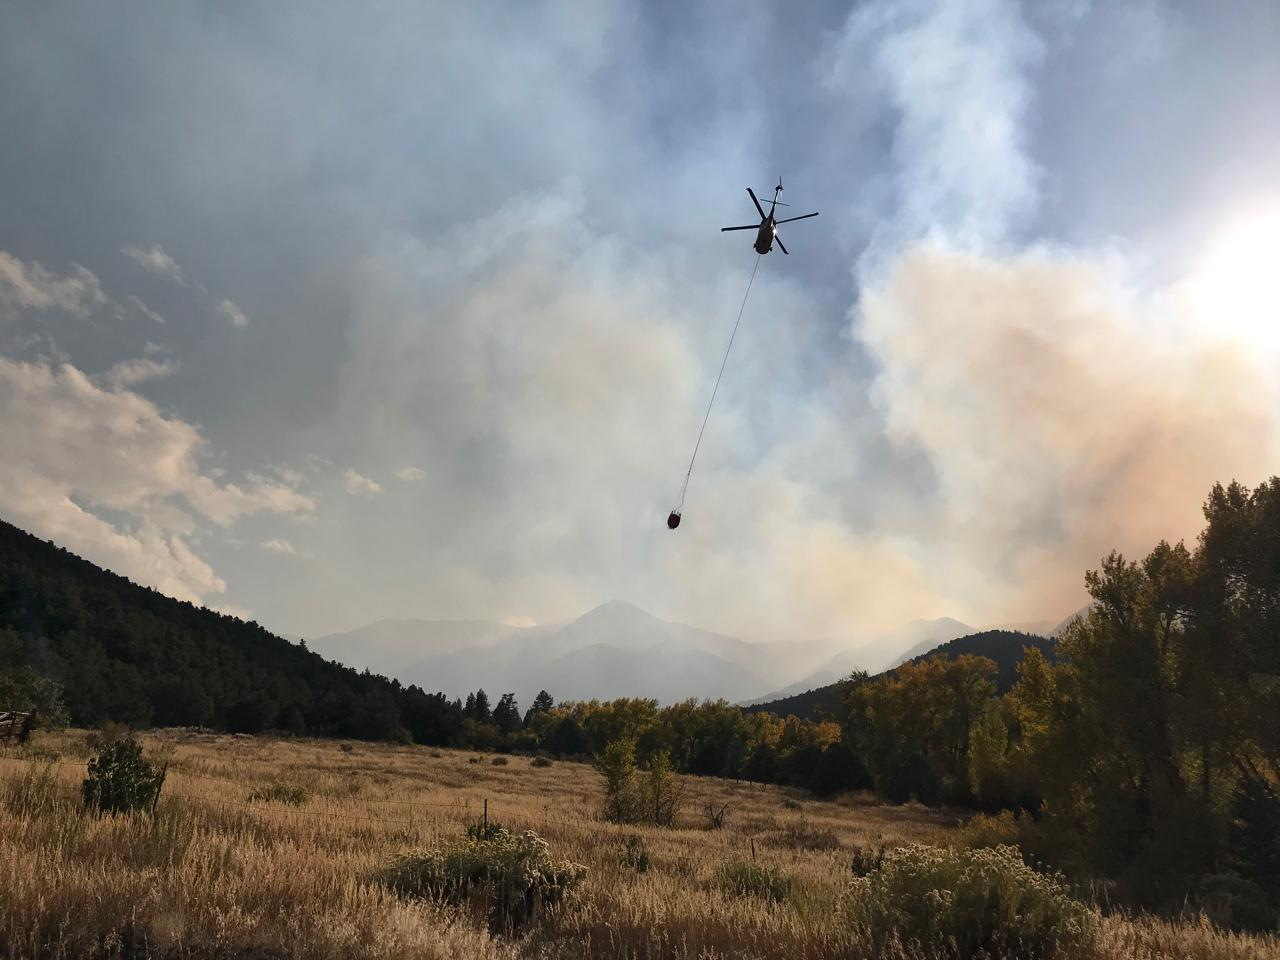 A helicopter flies over the section of Decker Fire last week. The fire has been burning south of Salida for more than a month and has grown to 8,000 acres.